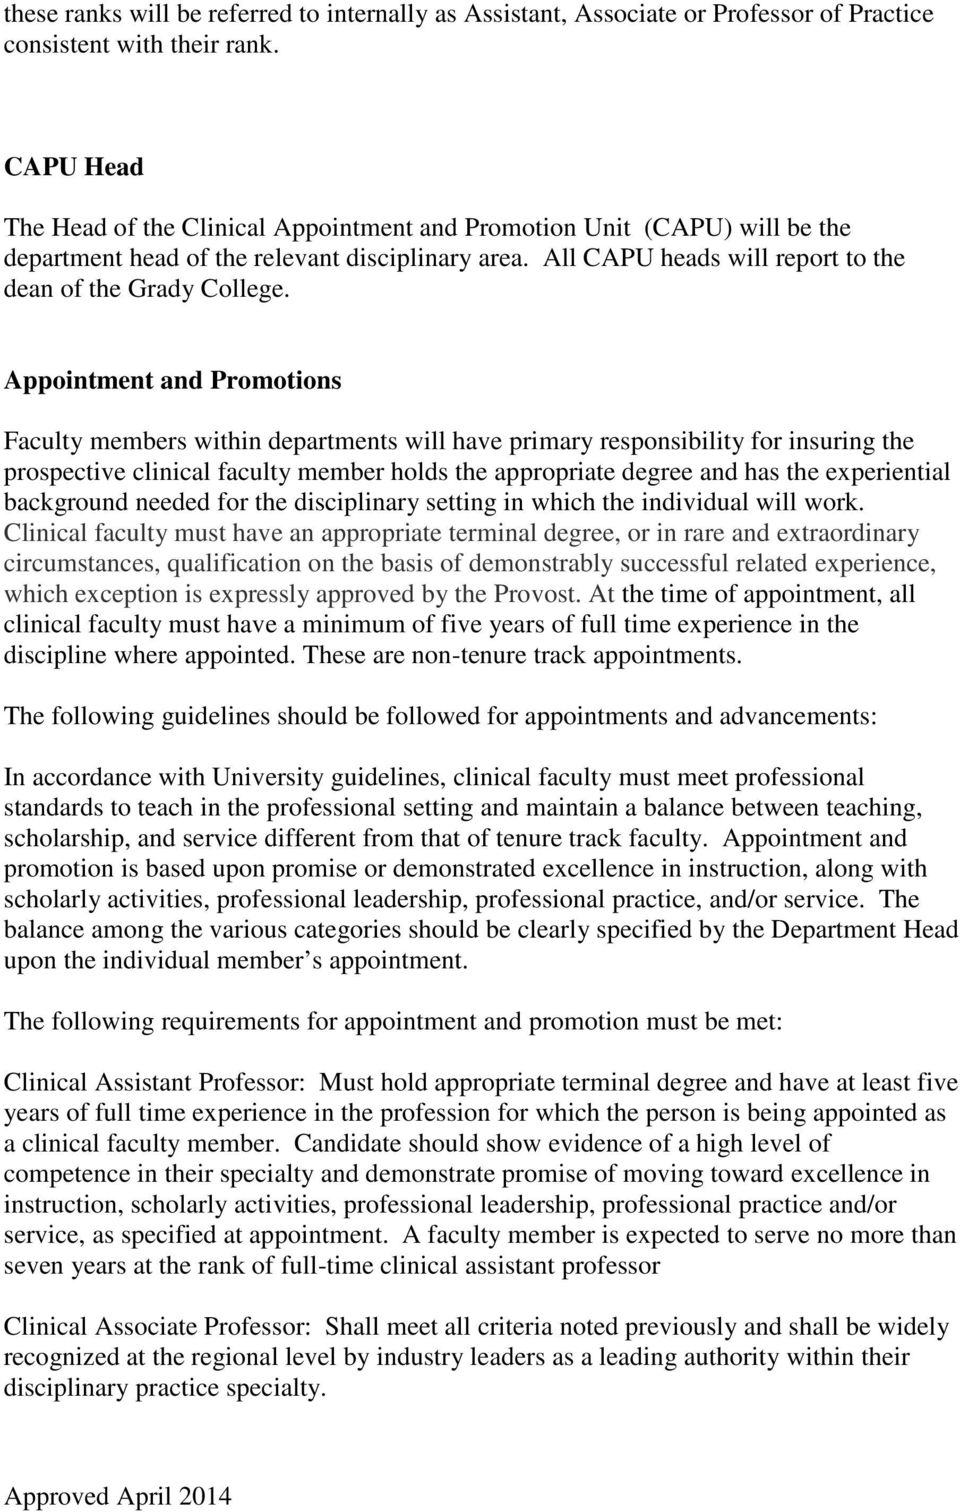 Appointment and Promotions Faculty members within departments will have primary responsibility for insuring the prospective clinical faculty member holds the appropriate degree and has the